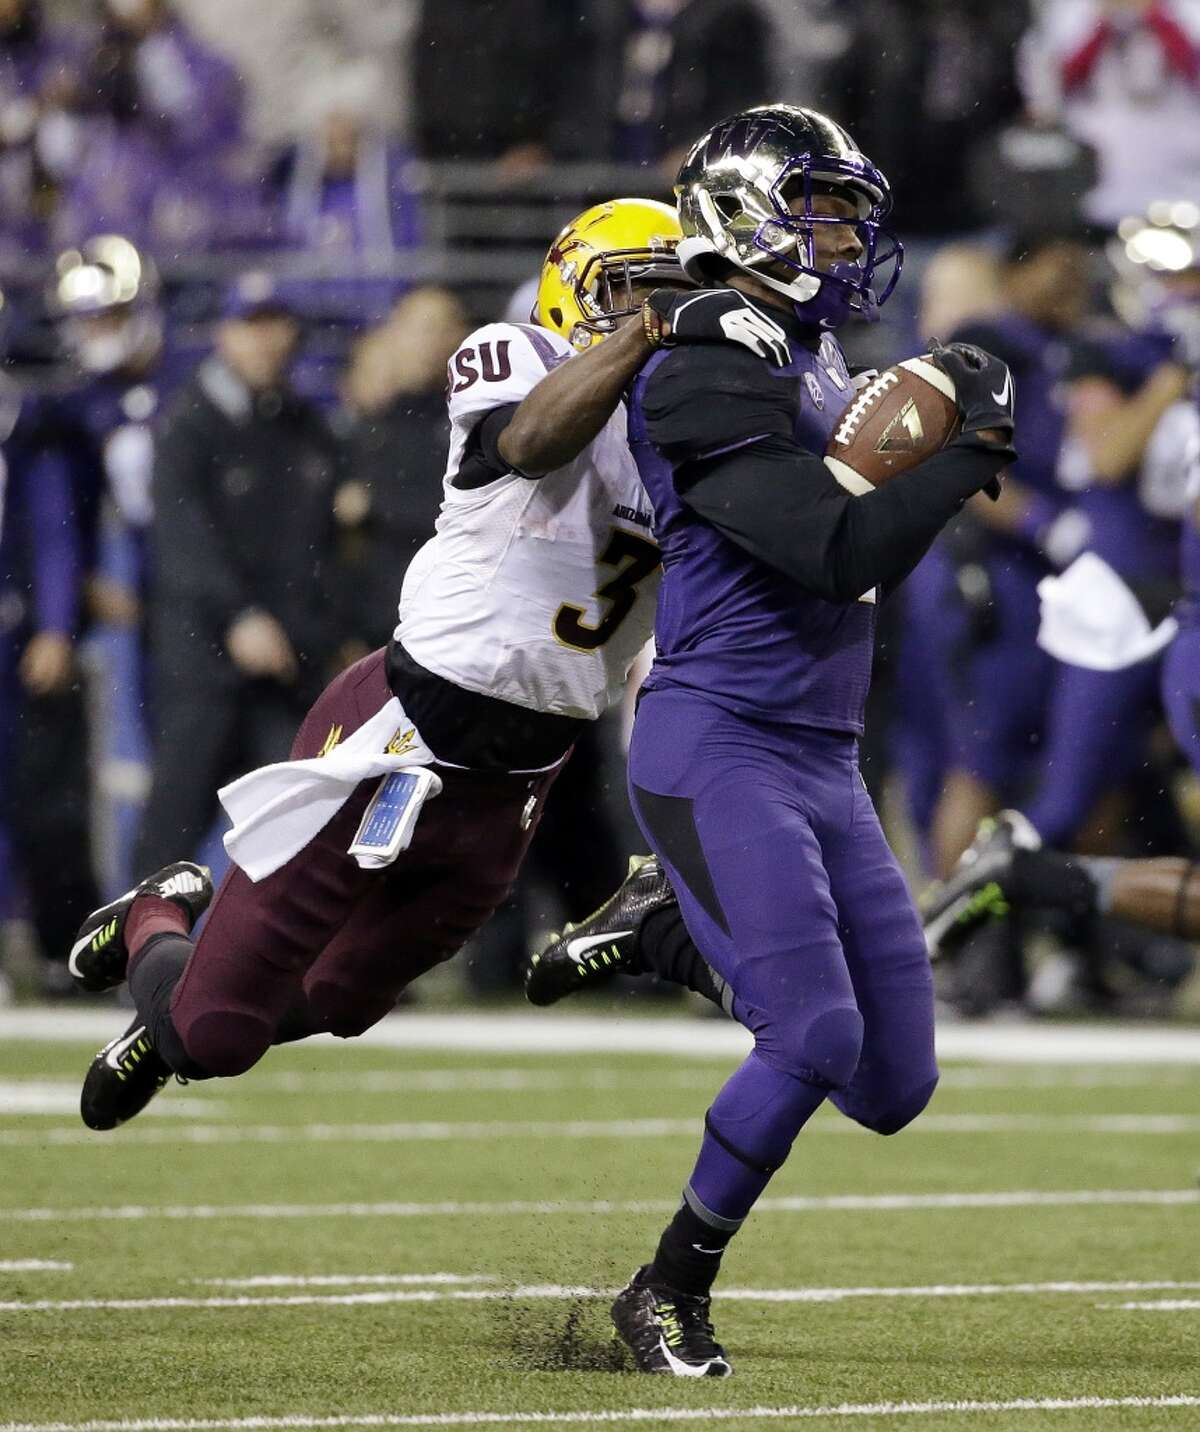 Washington's John Ross, right, is brought down from behind by Arizona State's Damarious Randall on a kickoff return late in the first half of an NCAA college football game Saturday, Oct. 25, 2014, in Seattle. Ross' long run was called back on a penalty. (AP Photo/Elaine Thompson)